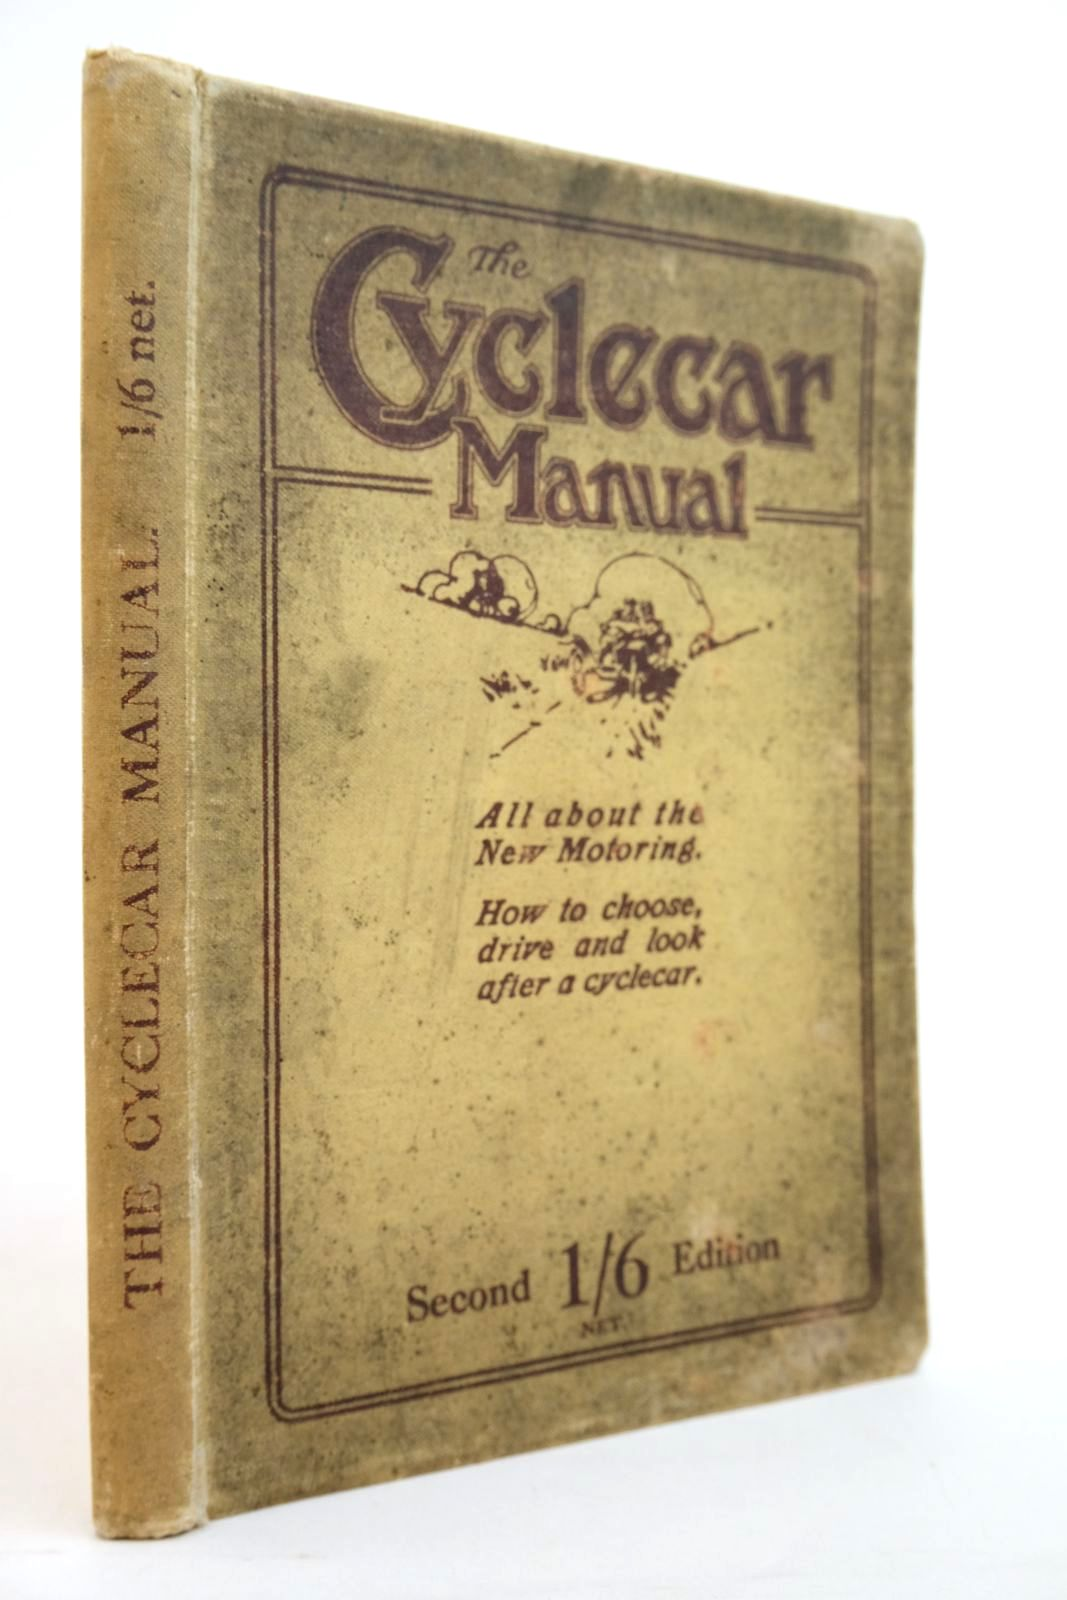 Photo of THE CYCLECAR MANUAL- Stock Number: 2134567